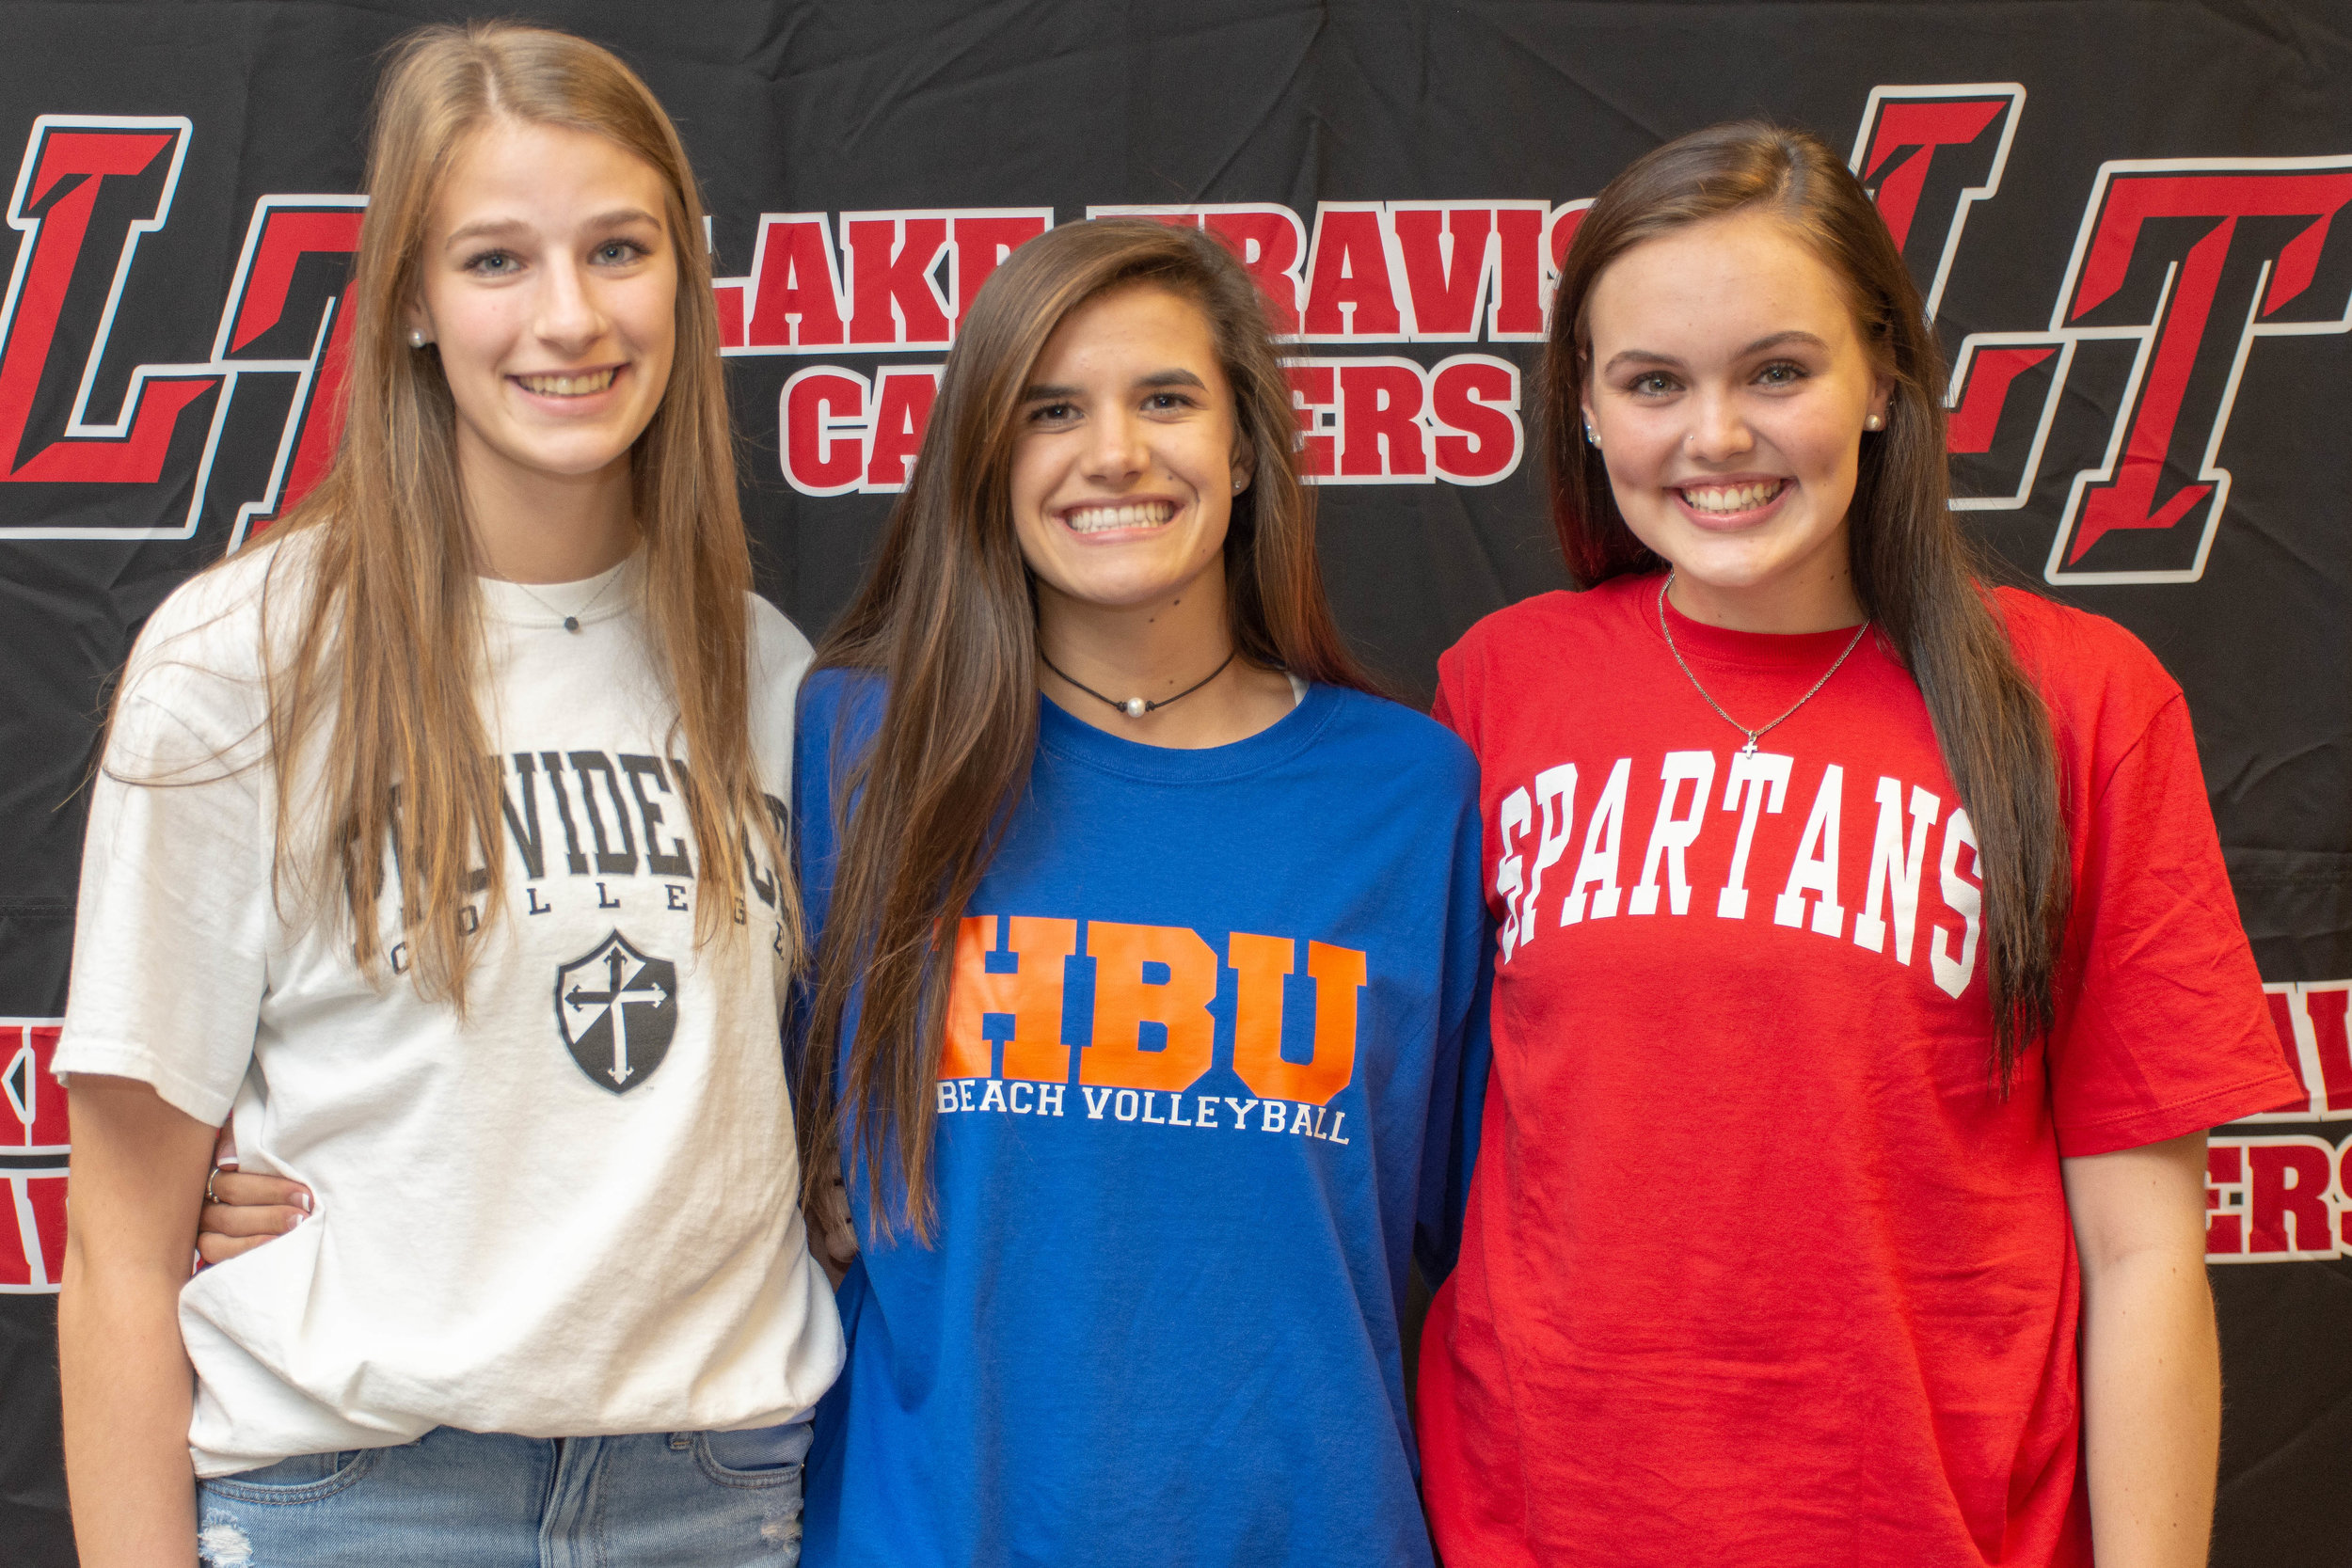 LTHS volleyball student-athletes (L to R):  Sasha Rudich  - Providence College   Kristen Kleymeyer  - Houston Baptist University   Cassidy Ehrie  - The University of Tampa